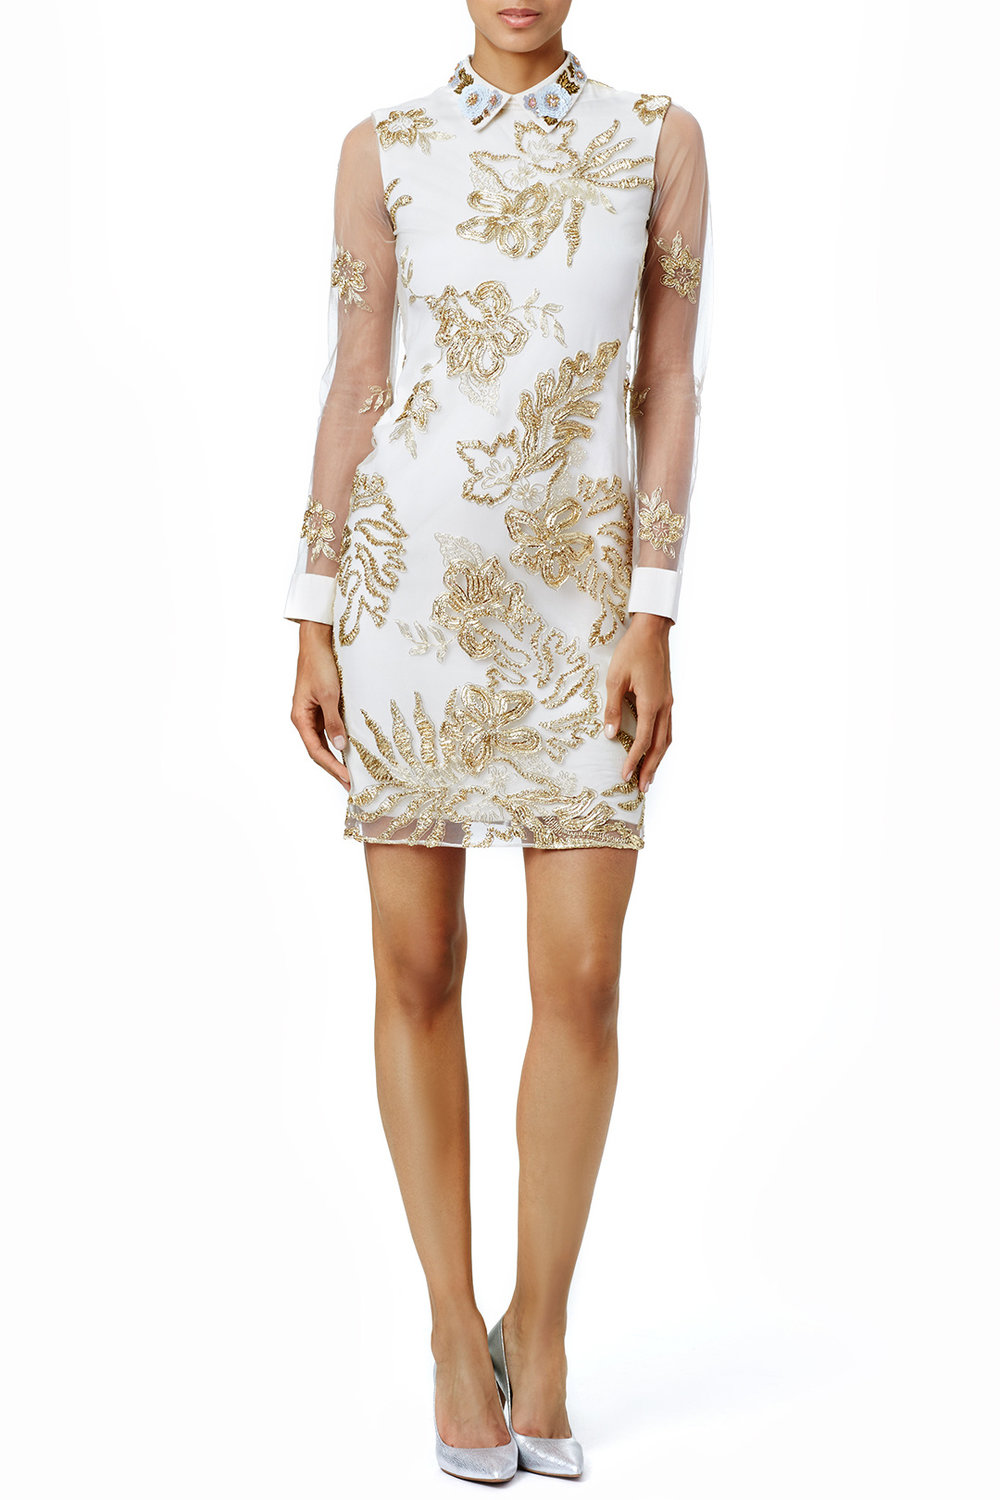 Marchesa Notte Delicate Gold Sheath - This is perfect in case your Grandma is Emily Gilmore from Gilmore Girls and lives in a mansion.